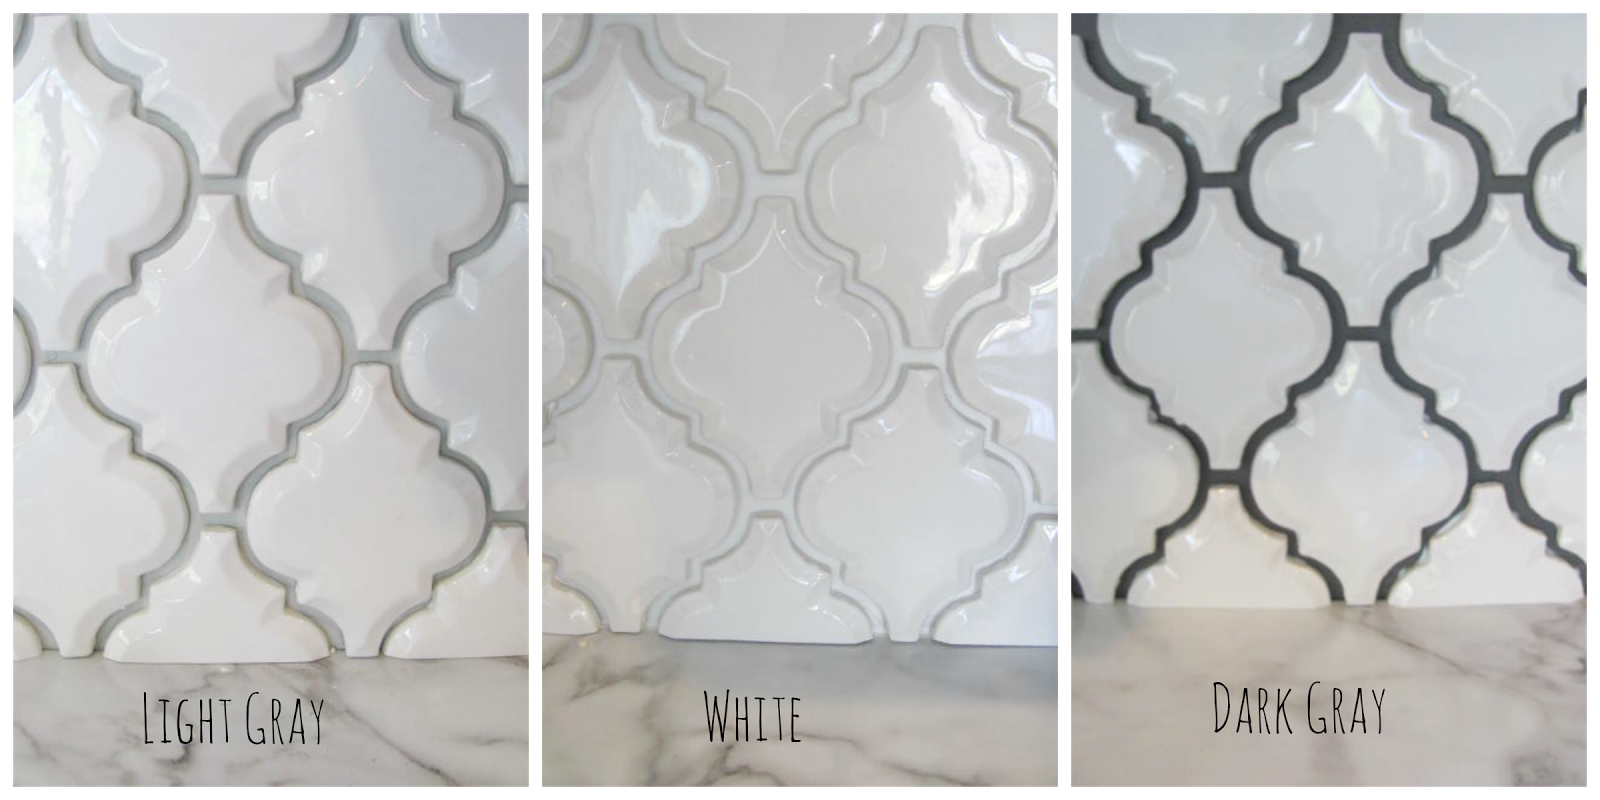 Great Visual For Colored Grout Options And How They Change The Way Tile  Looks.